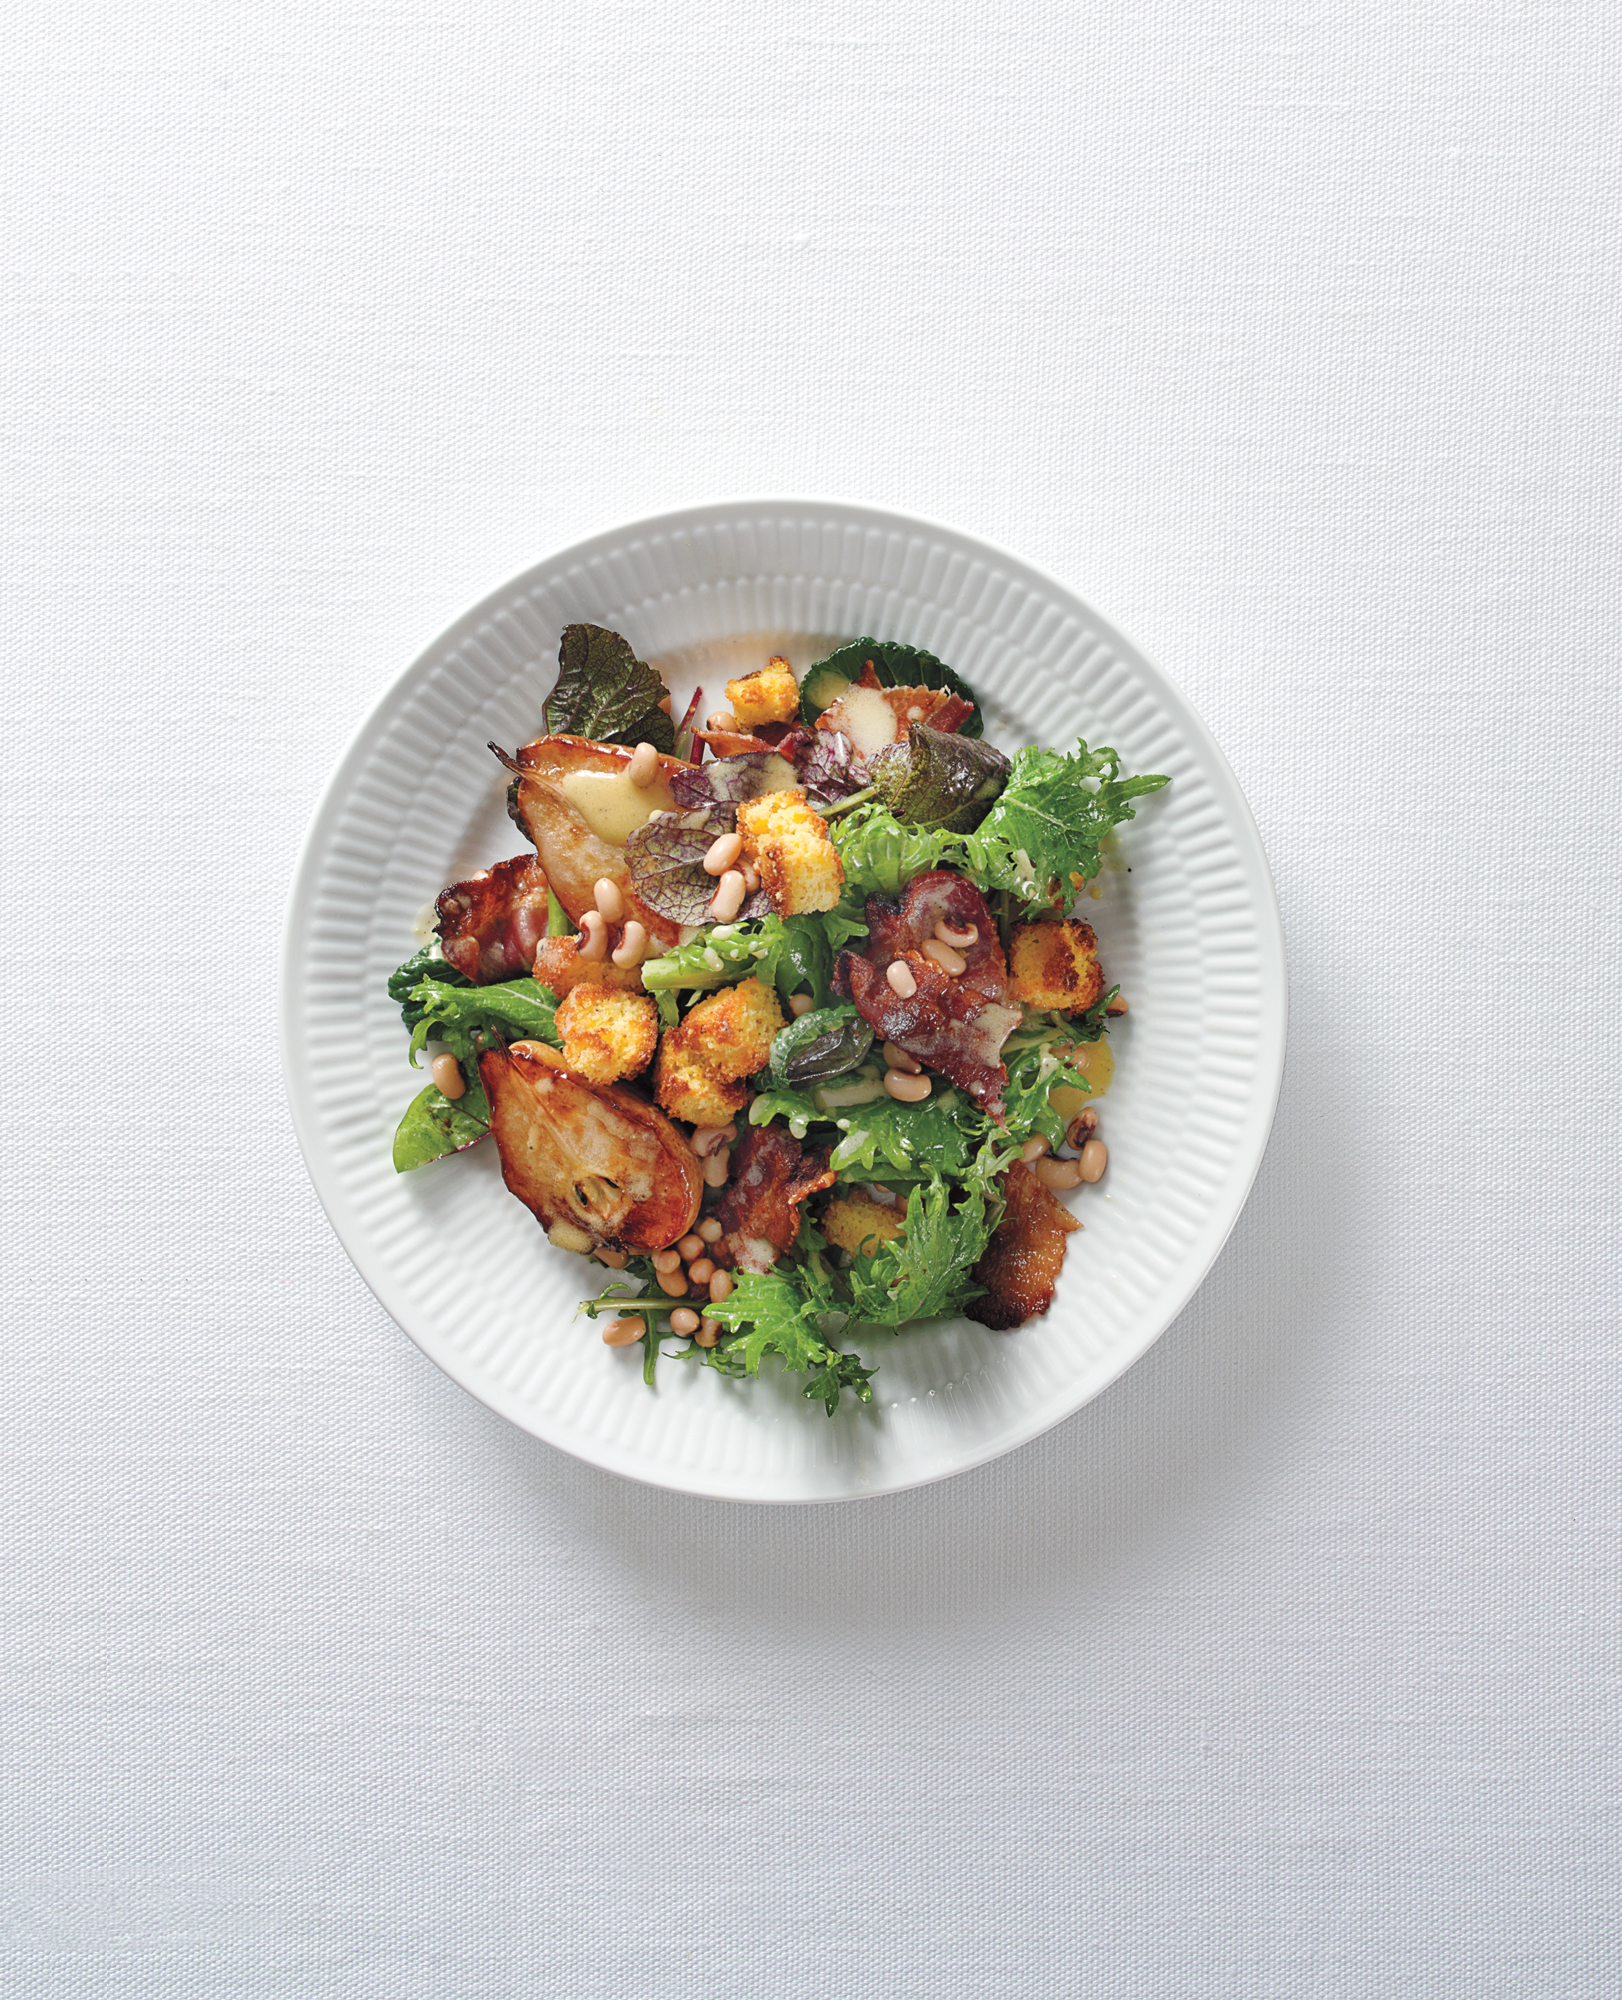 Hearty Greens Salad with 